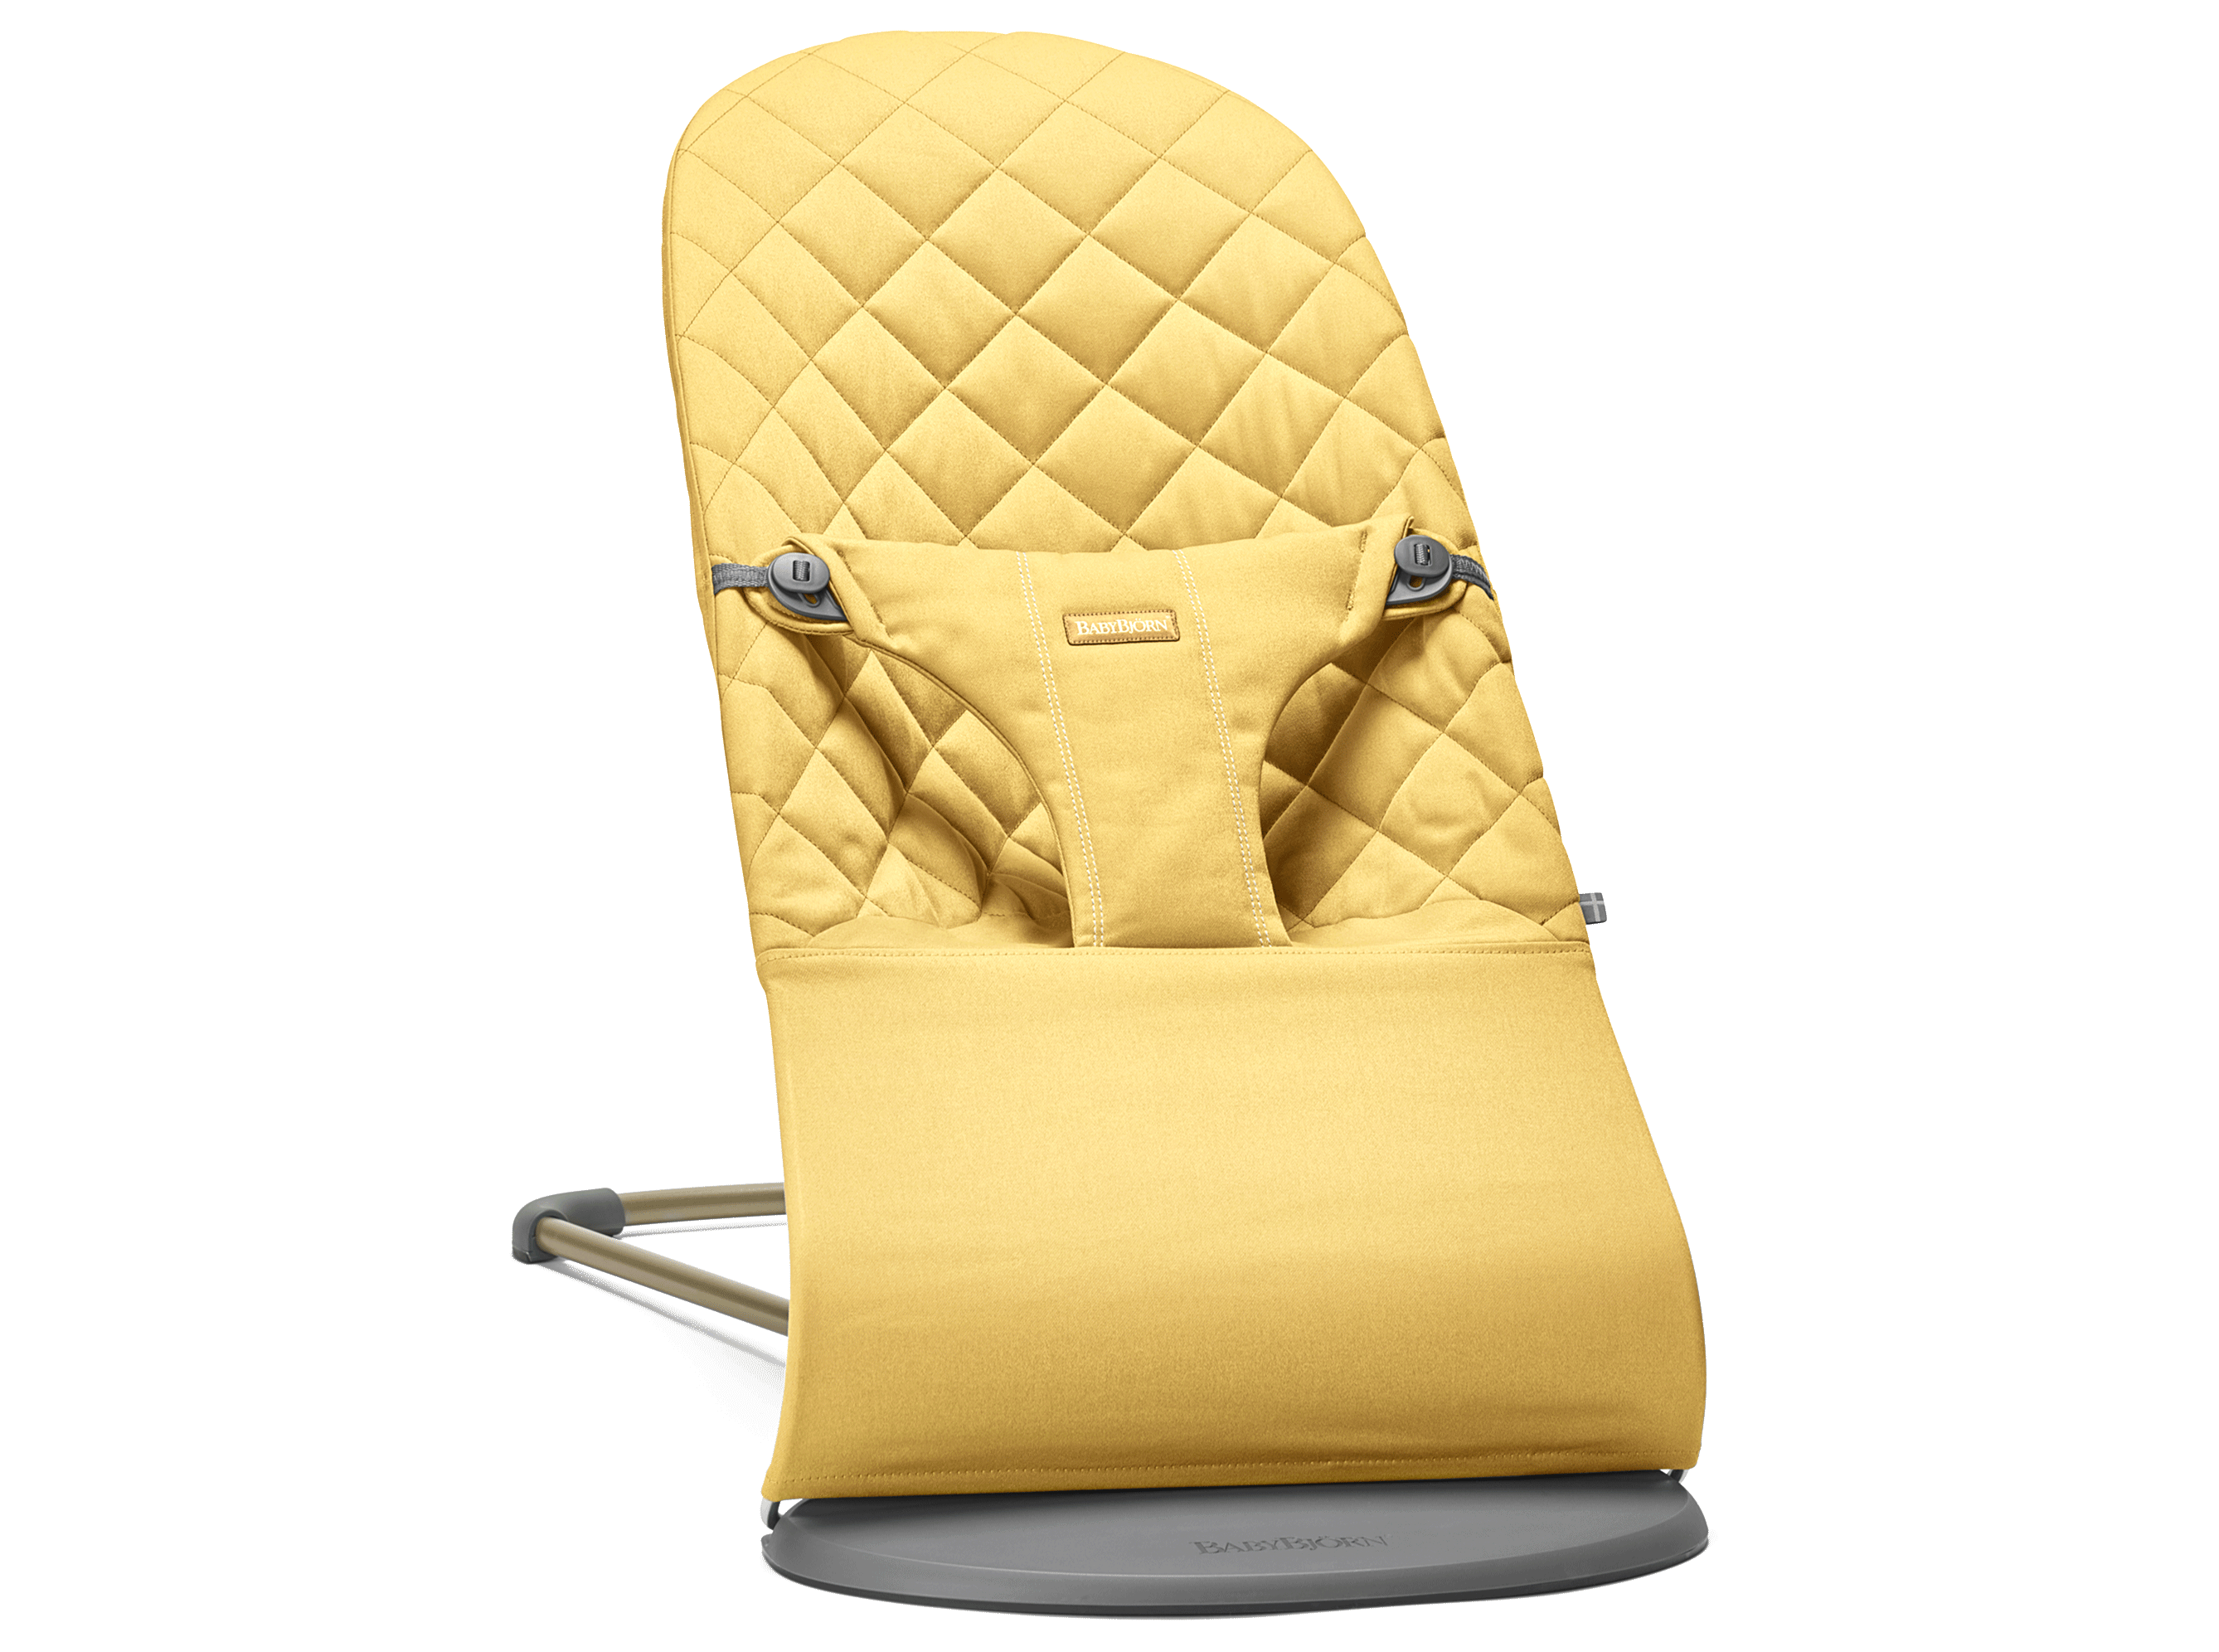 BABYBJÖRN Bouncer Bliss, Yellow, Cotton – Baby Power Collection